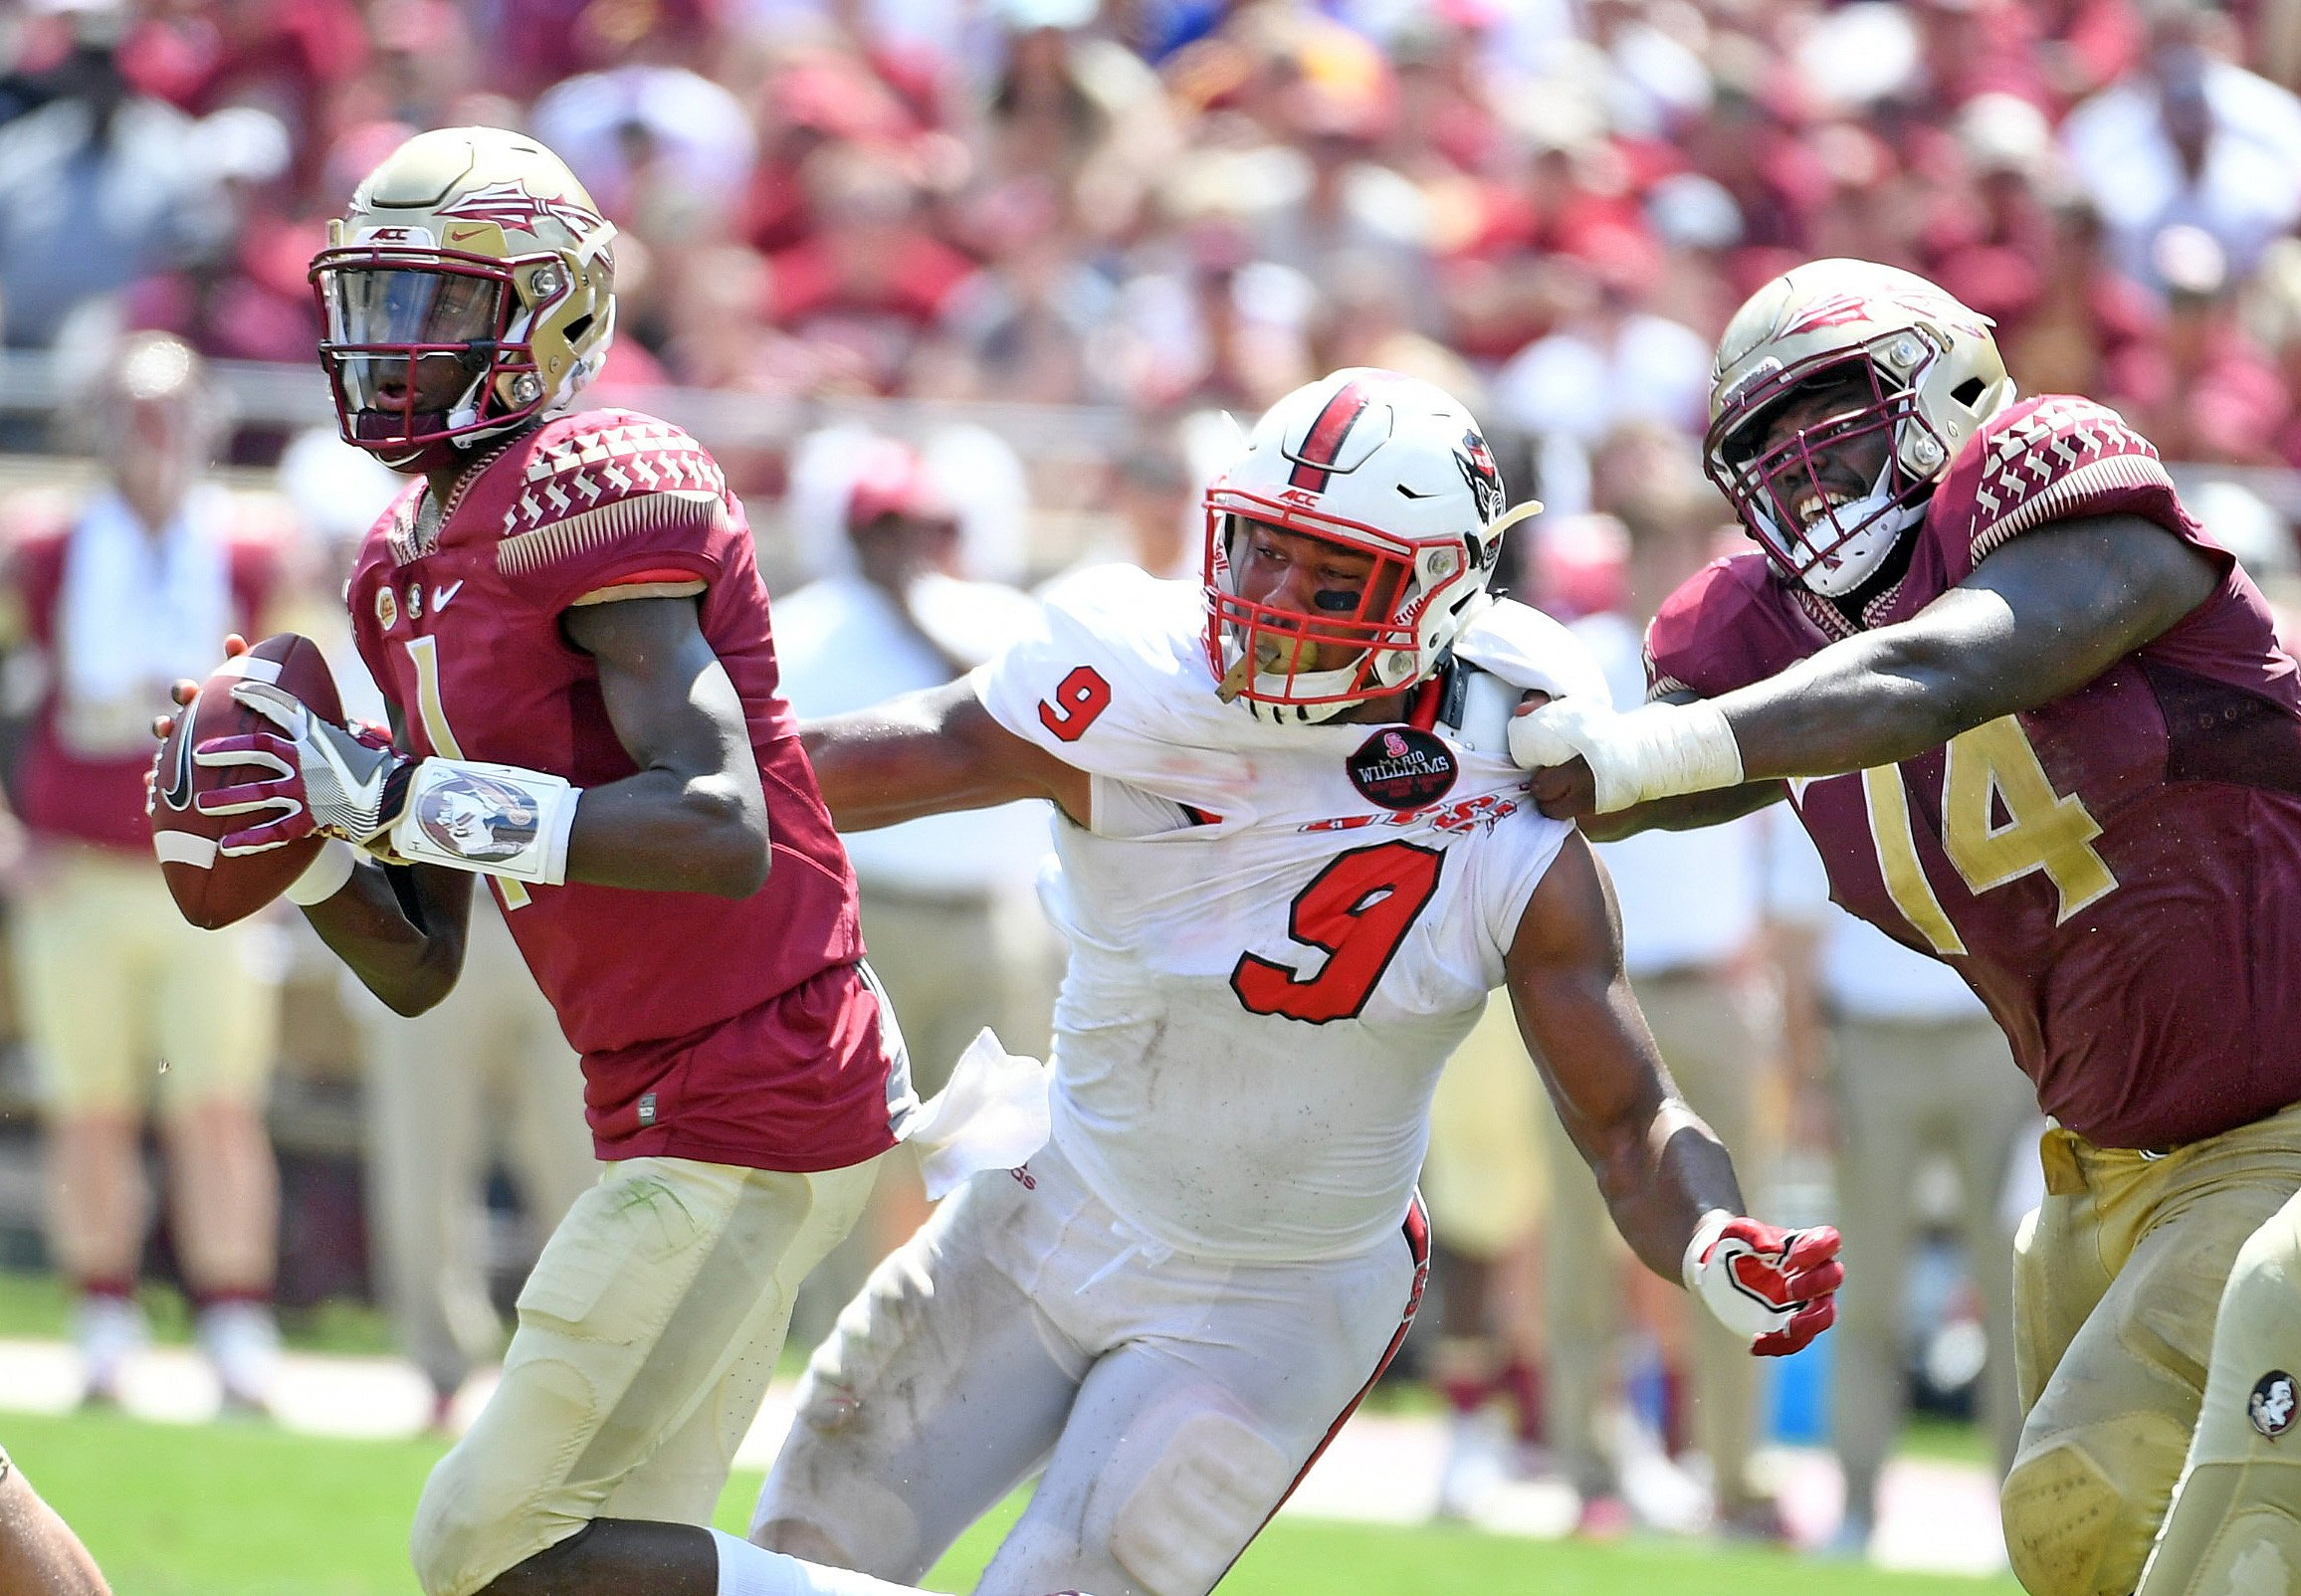 Winless no more: FSU rallies to beat Wake Forest